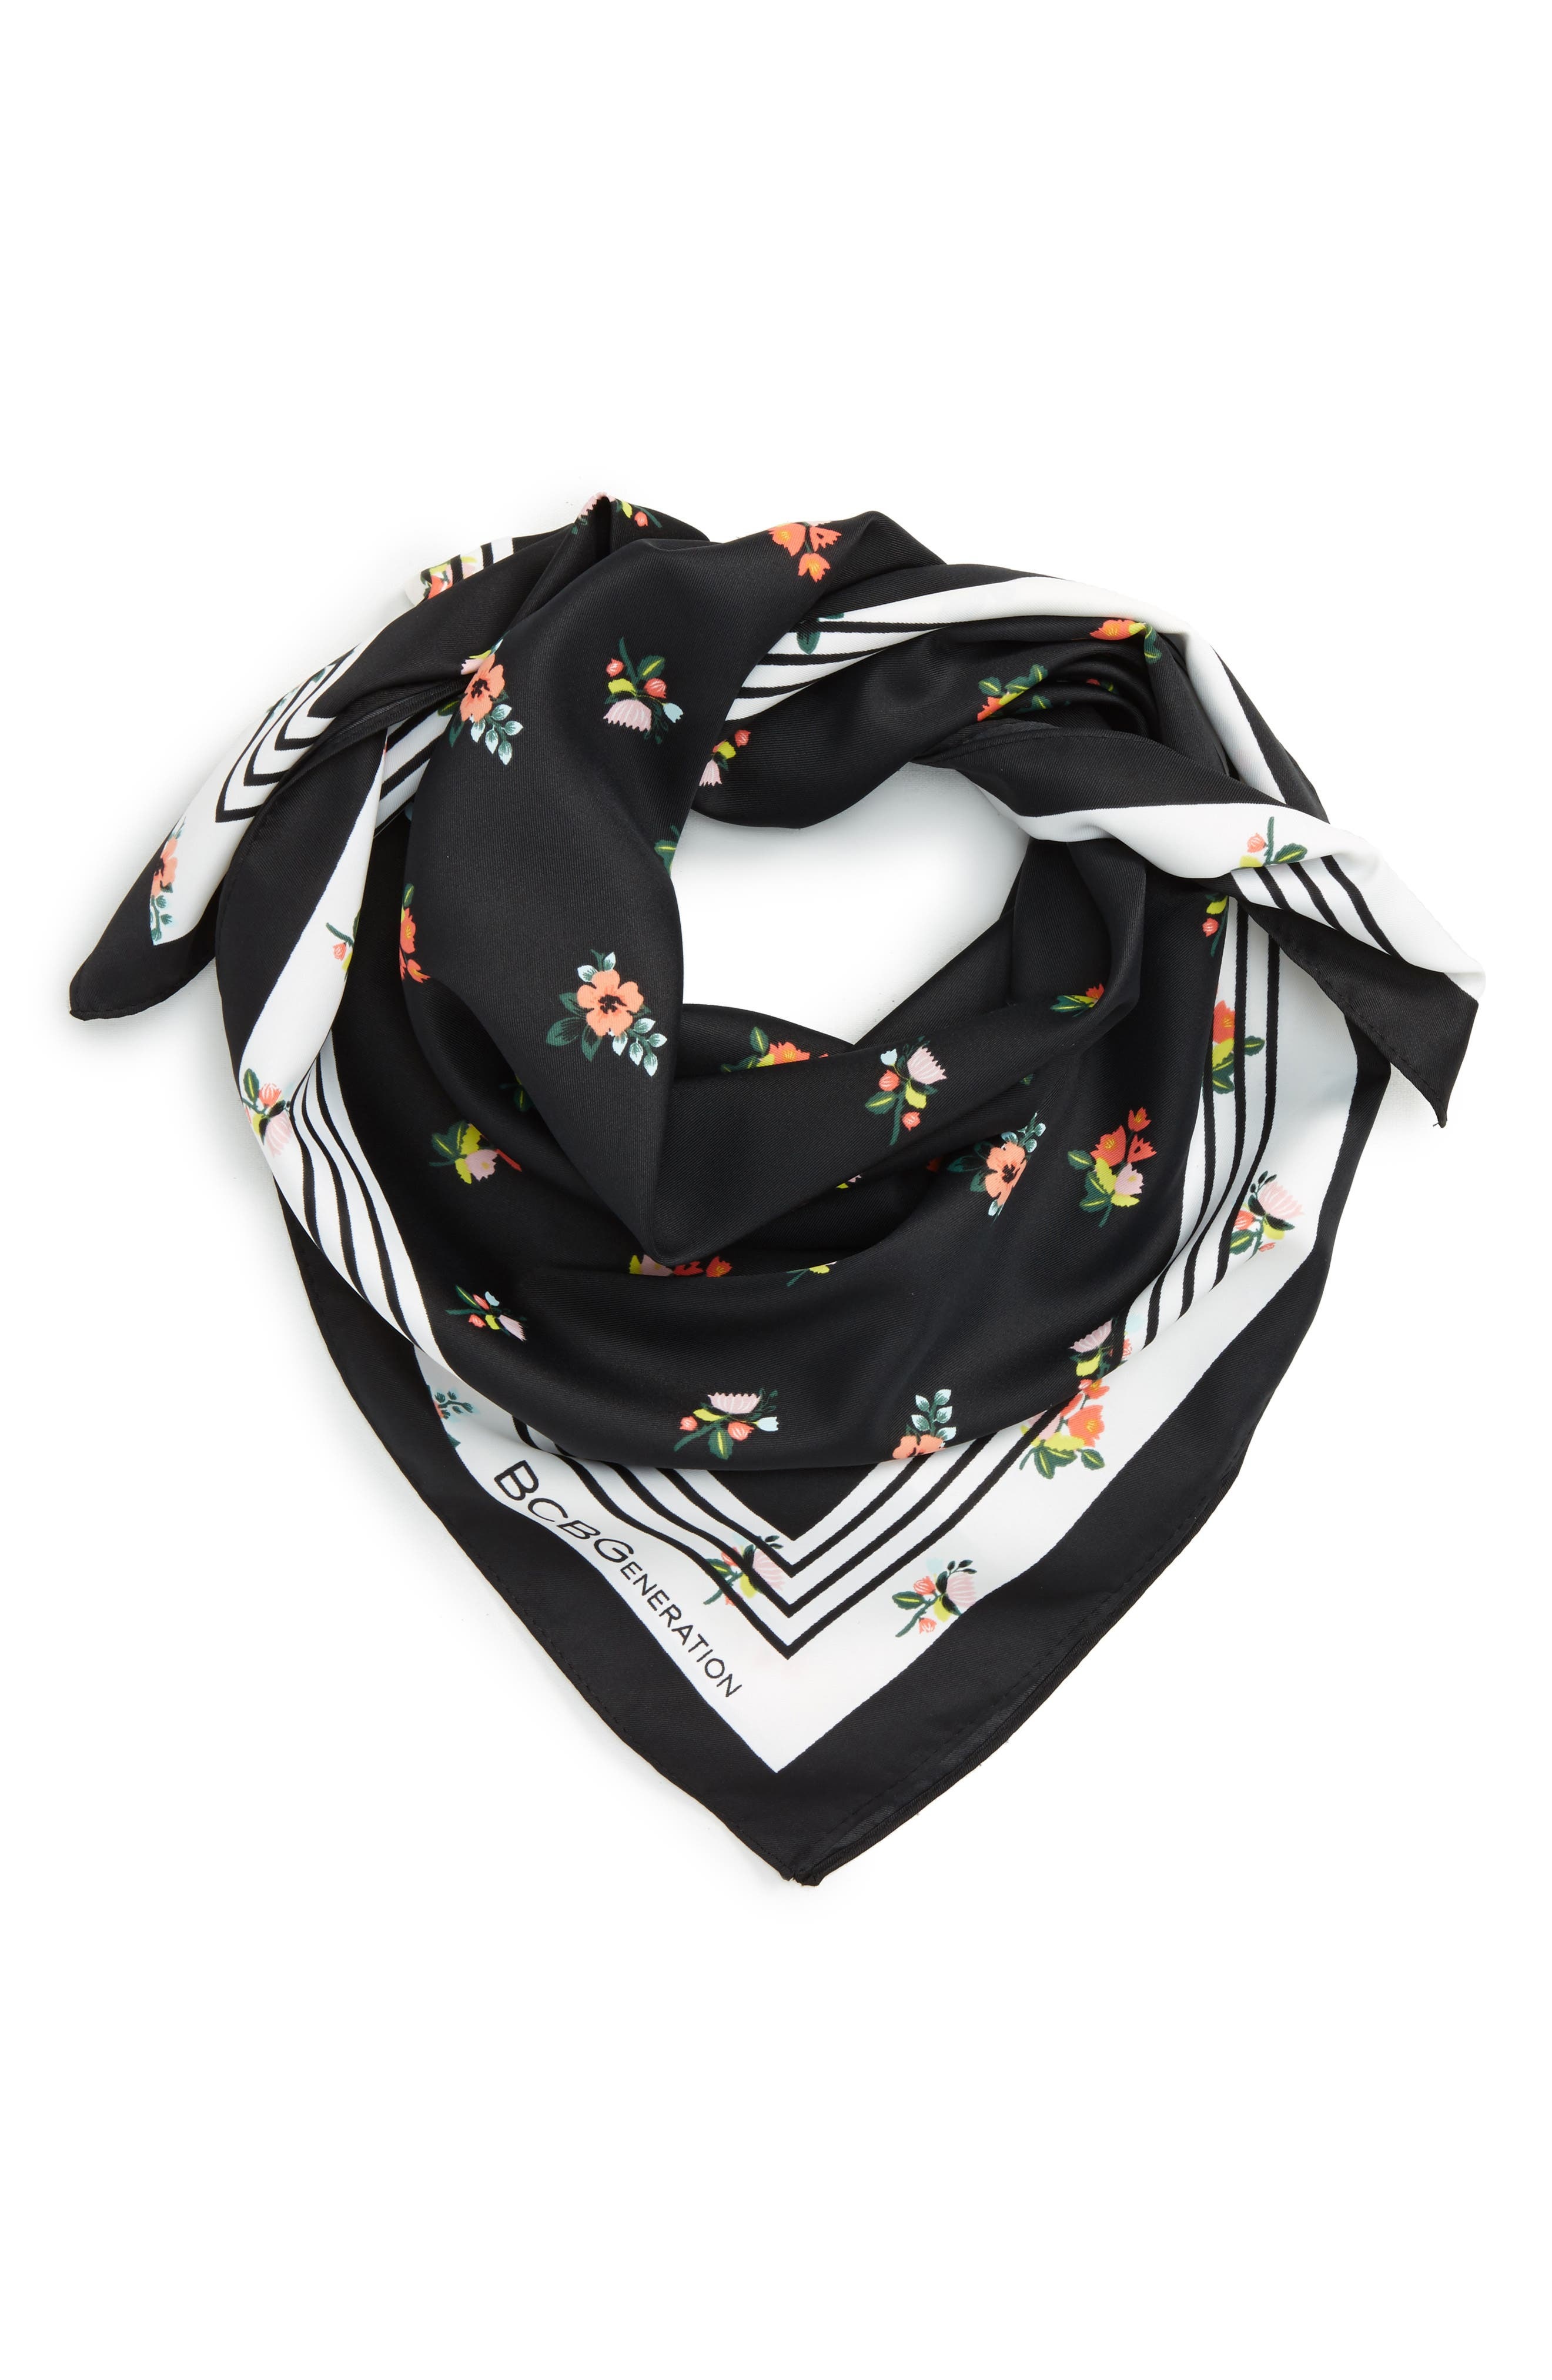 Alternate Image 1 Selected - BCBGeneration Falling Floral Print Bandana